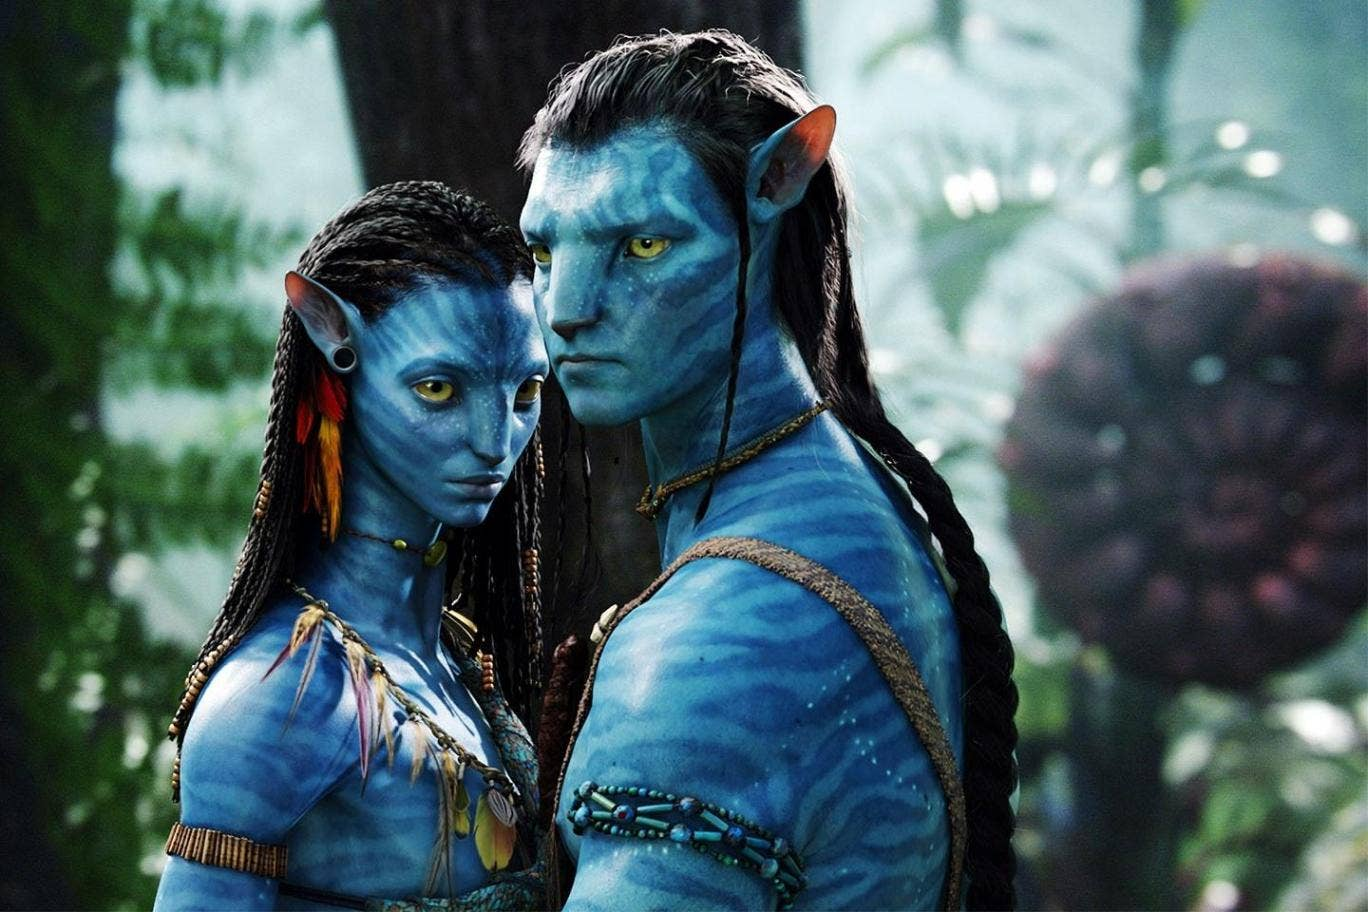 The film Avatar: actors and roles